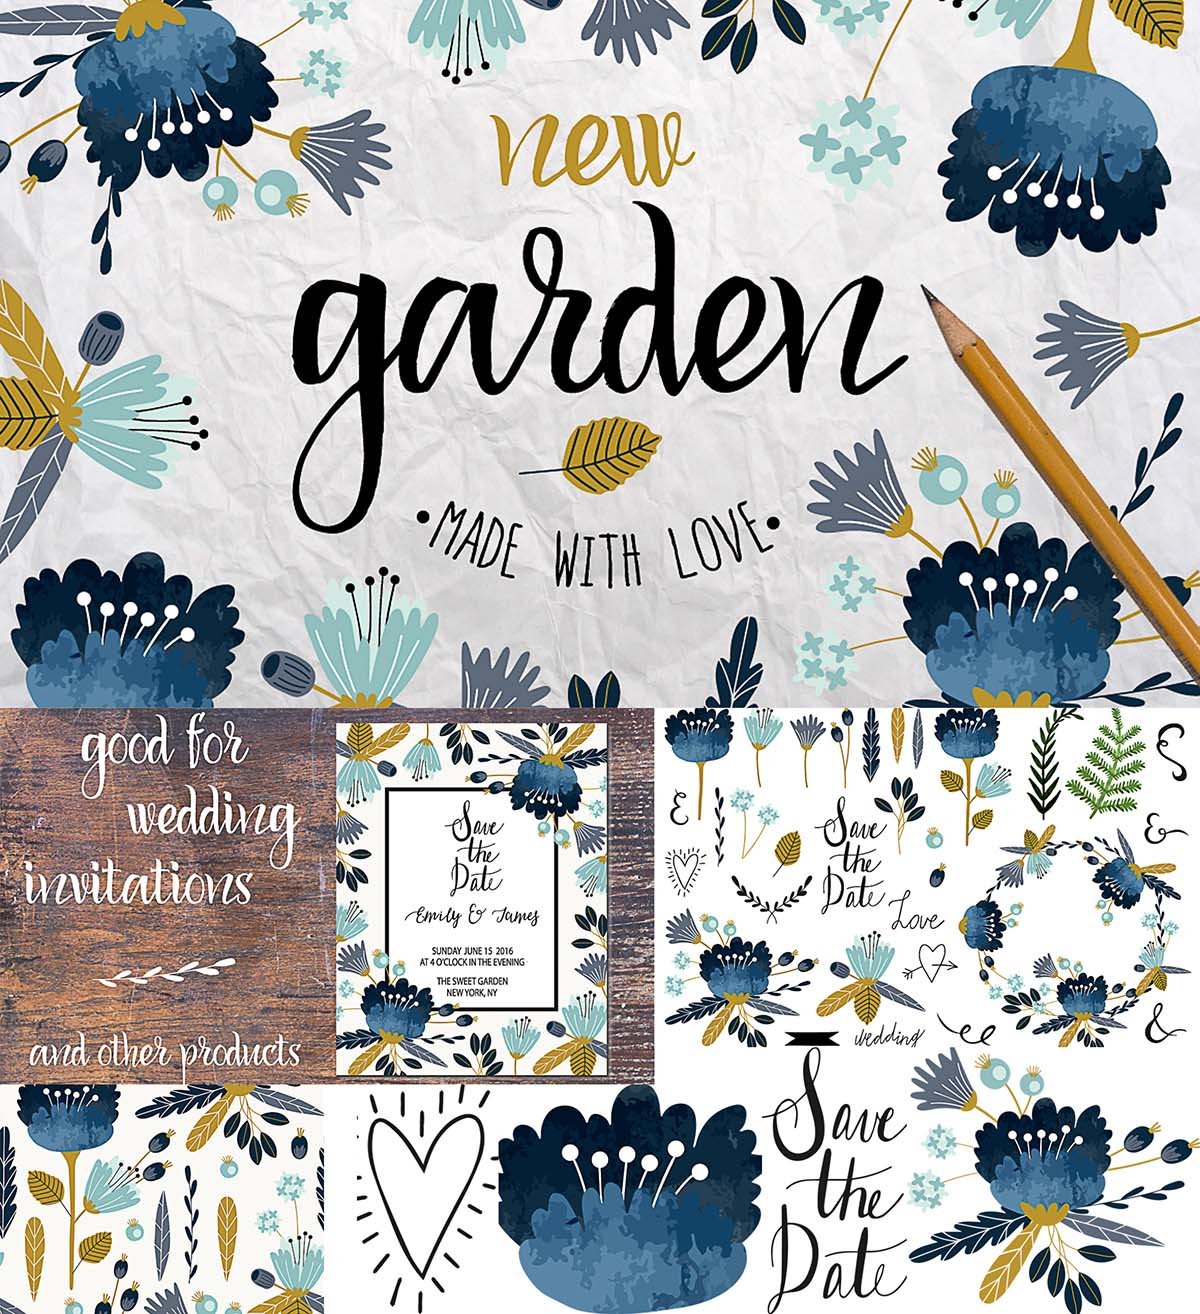 Garden with flowers illustrations and patterns